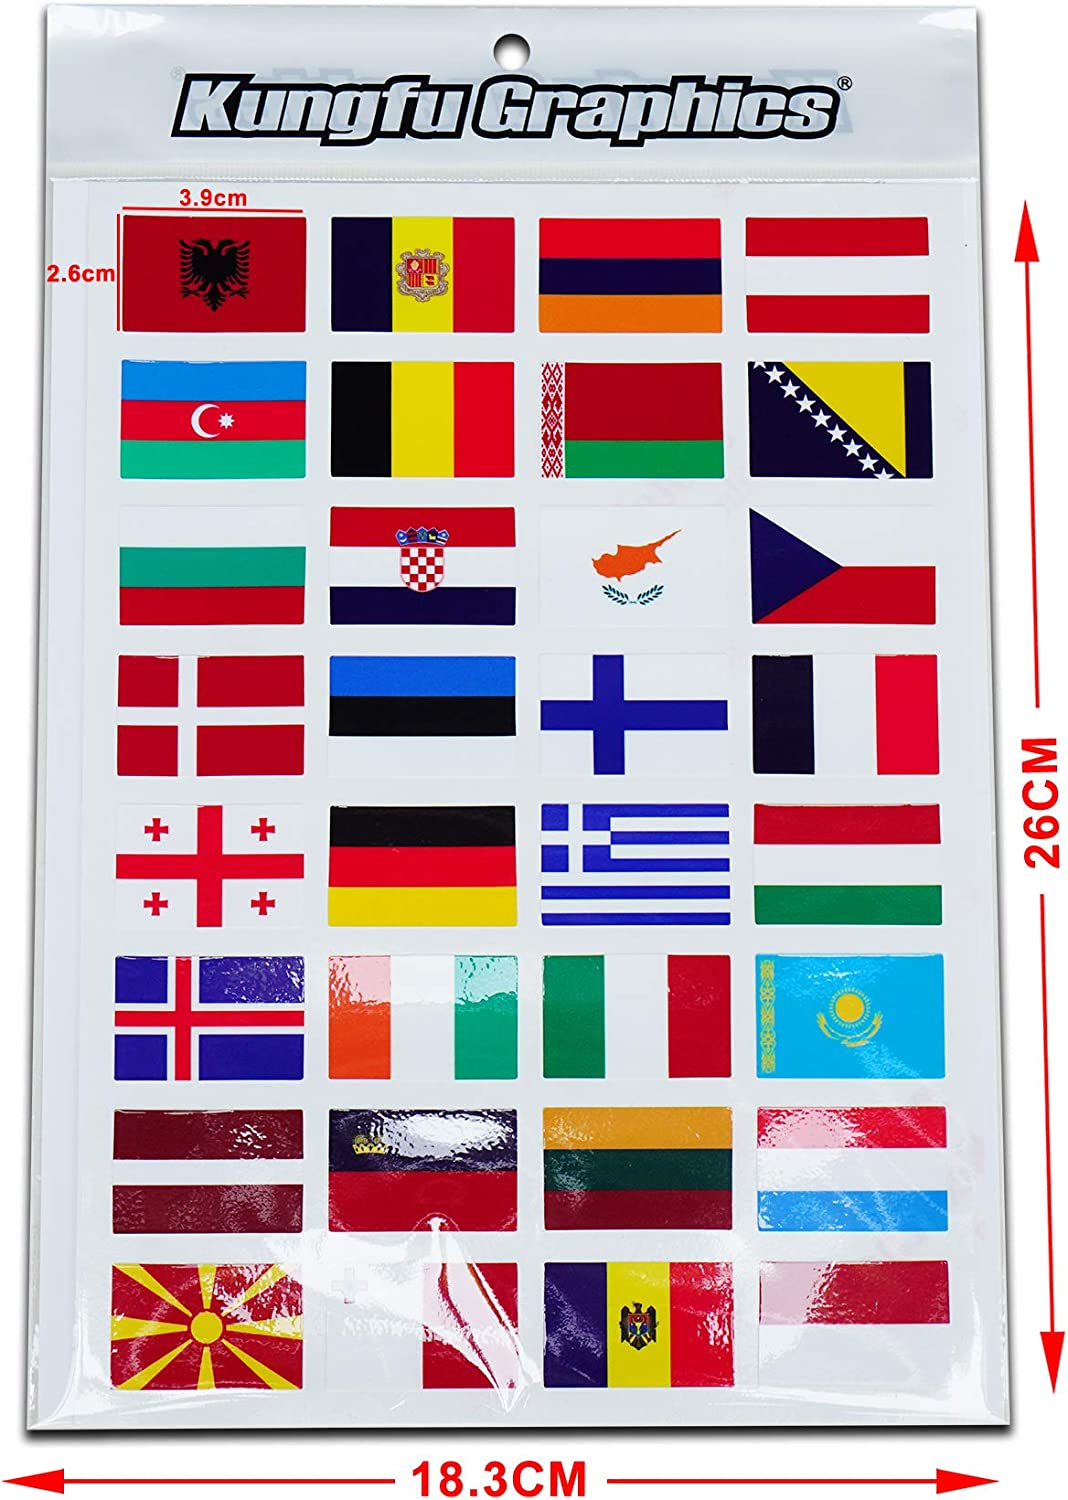 Kungfu Graphics The United States American US USA National Flag Racing Sticker Sheet Universal Red Blue White 7.2x 10.2 inch